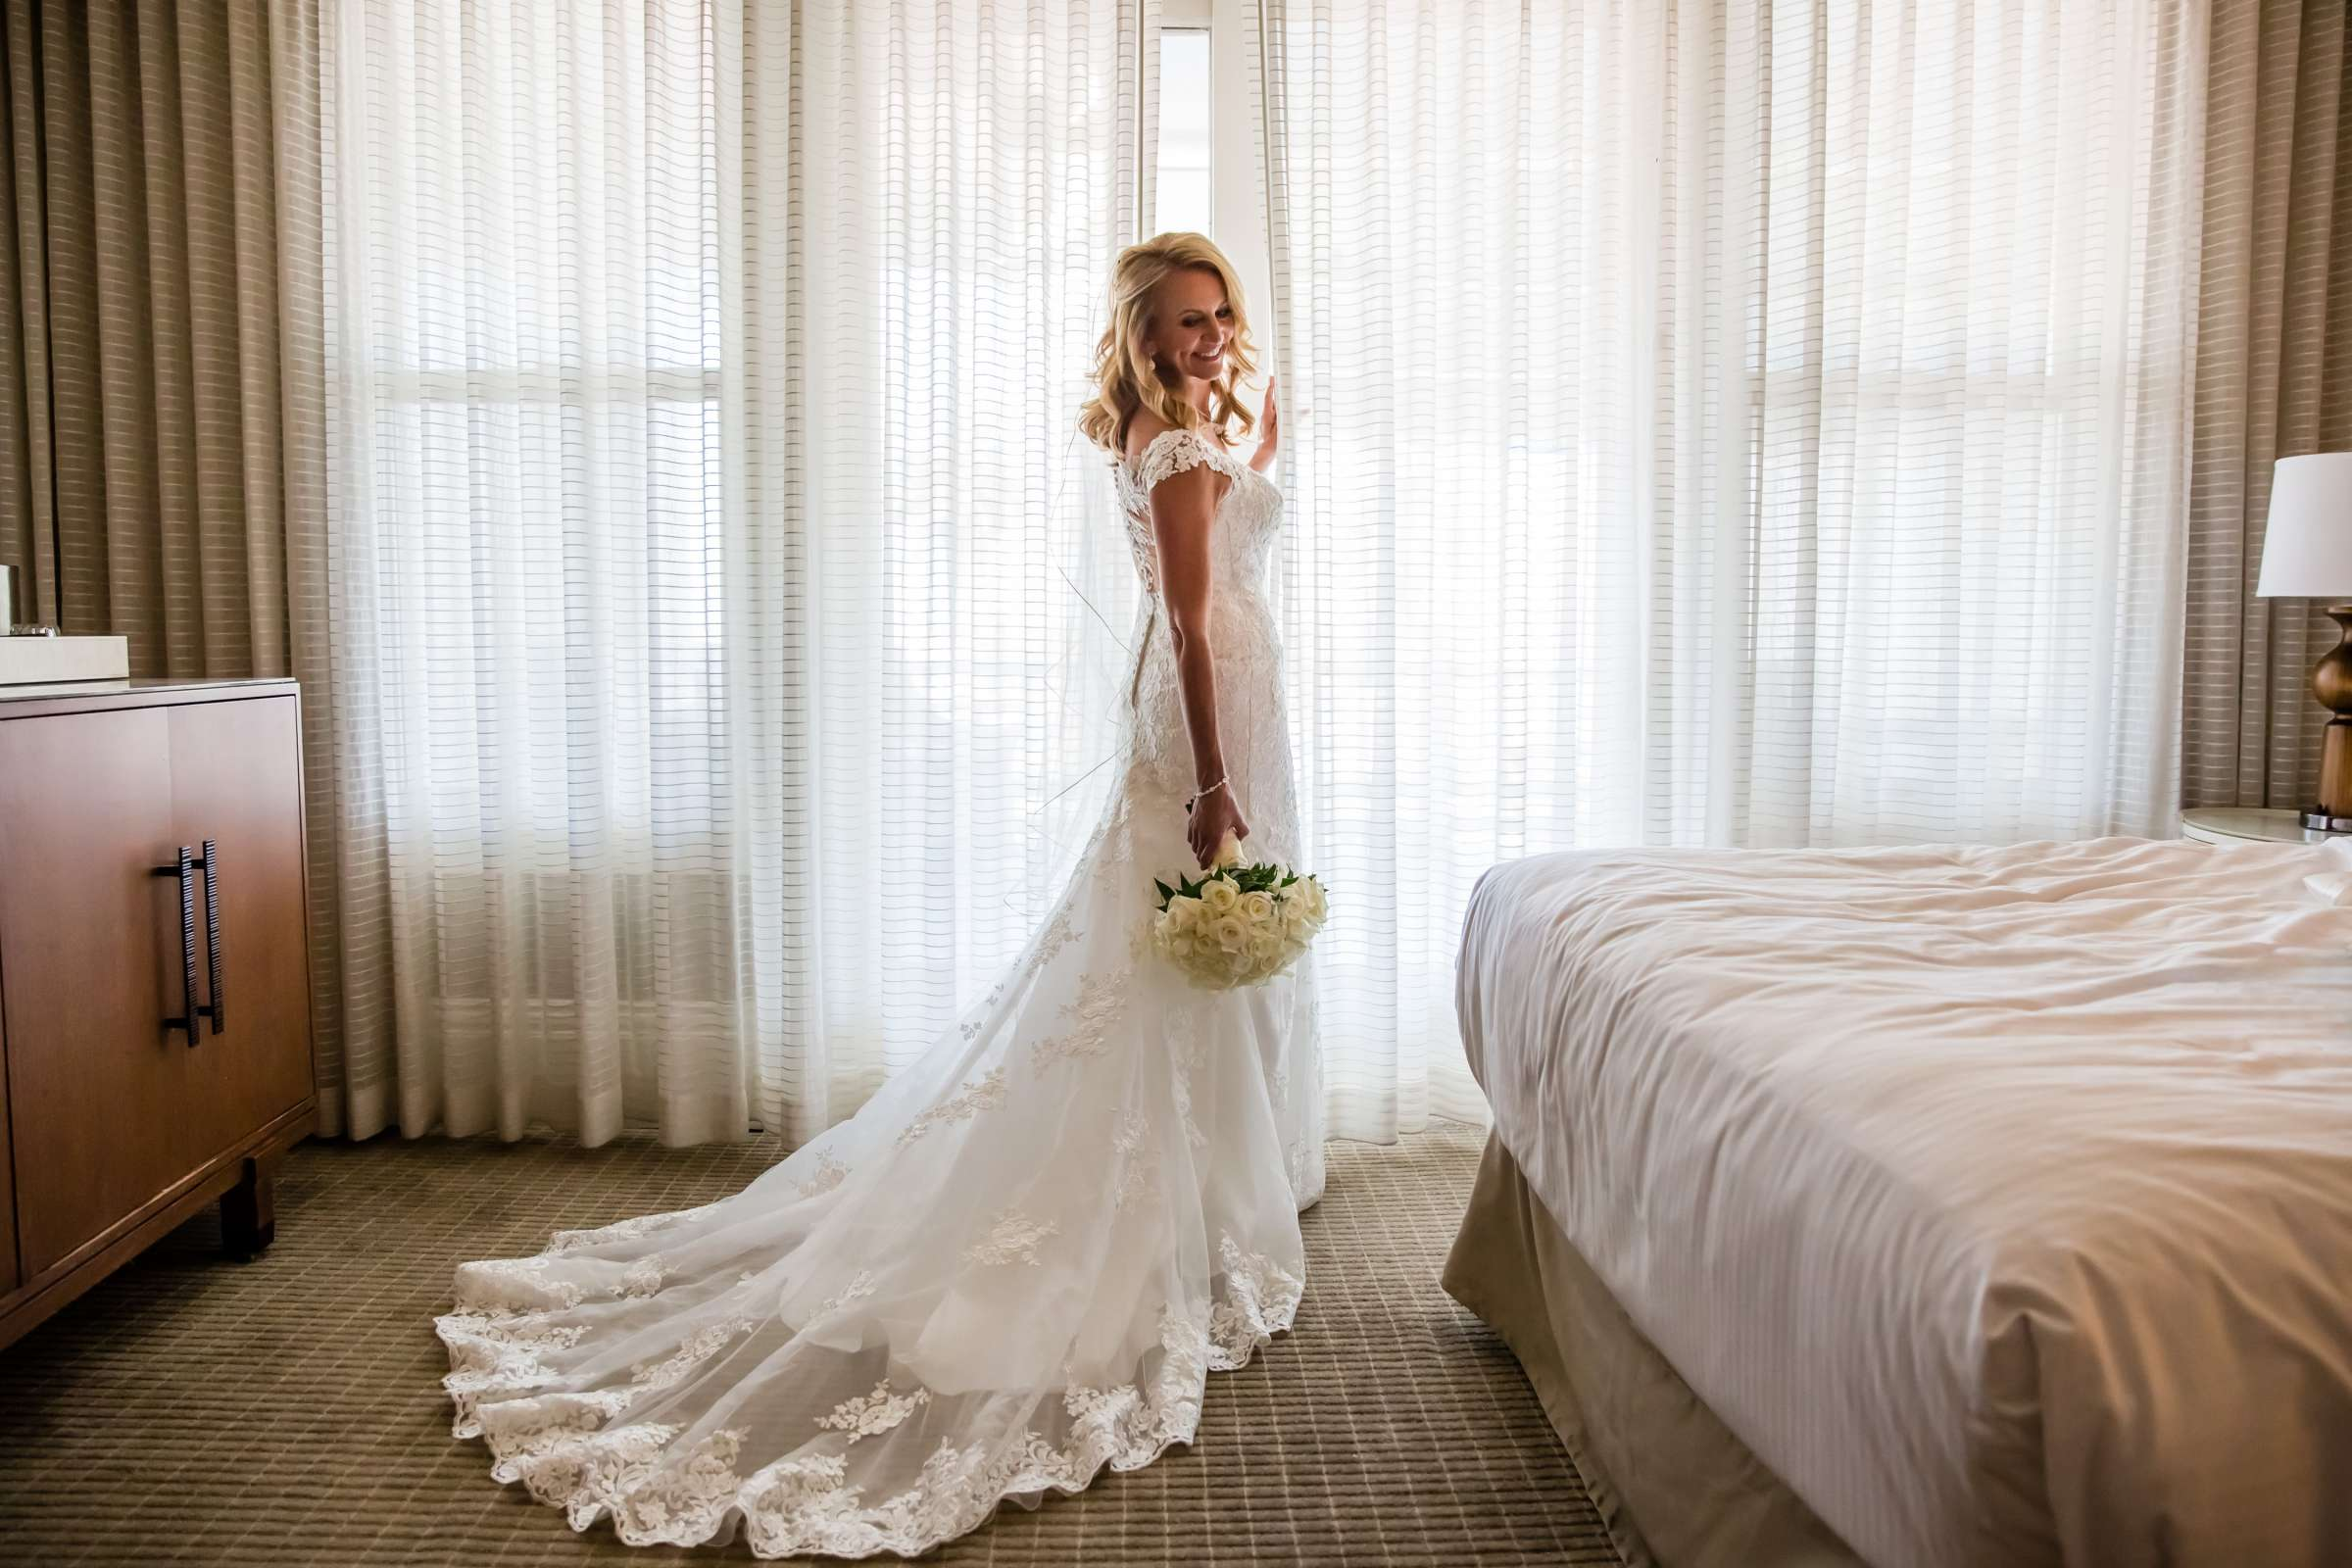 Hotel Del Coronado Wedding coordinated by Creative Affairs Inc, Diane and Paul Wedding Photo #37 by True Photography